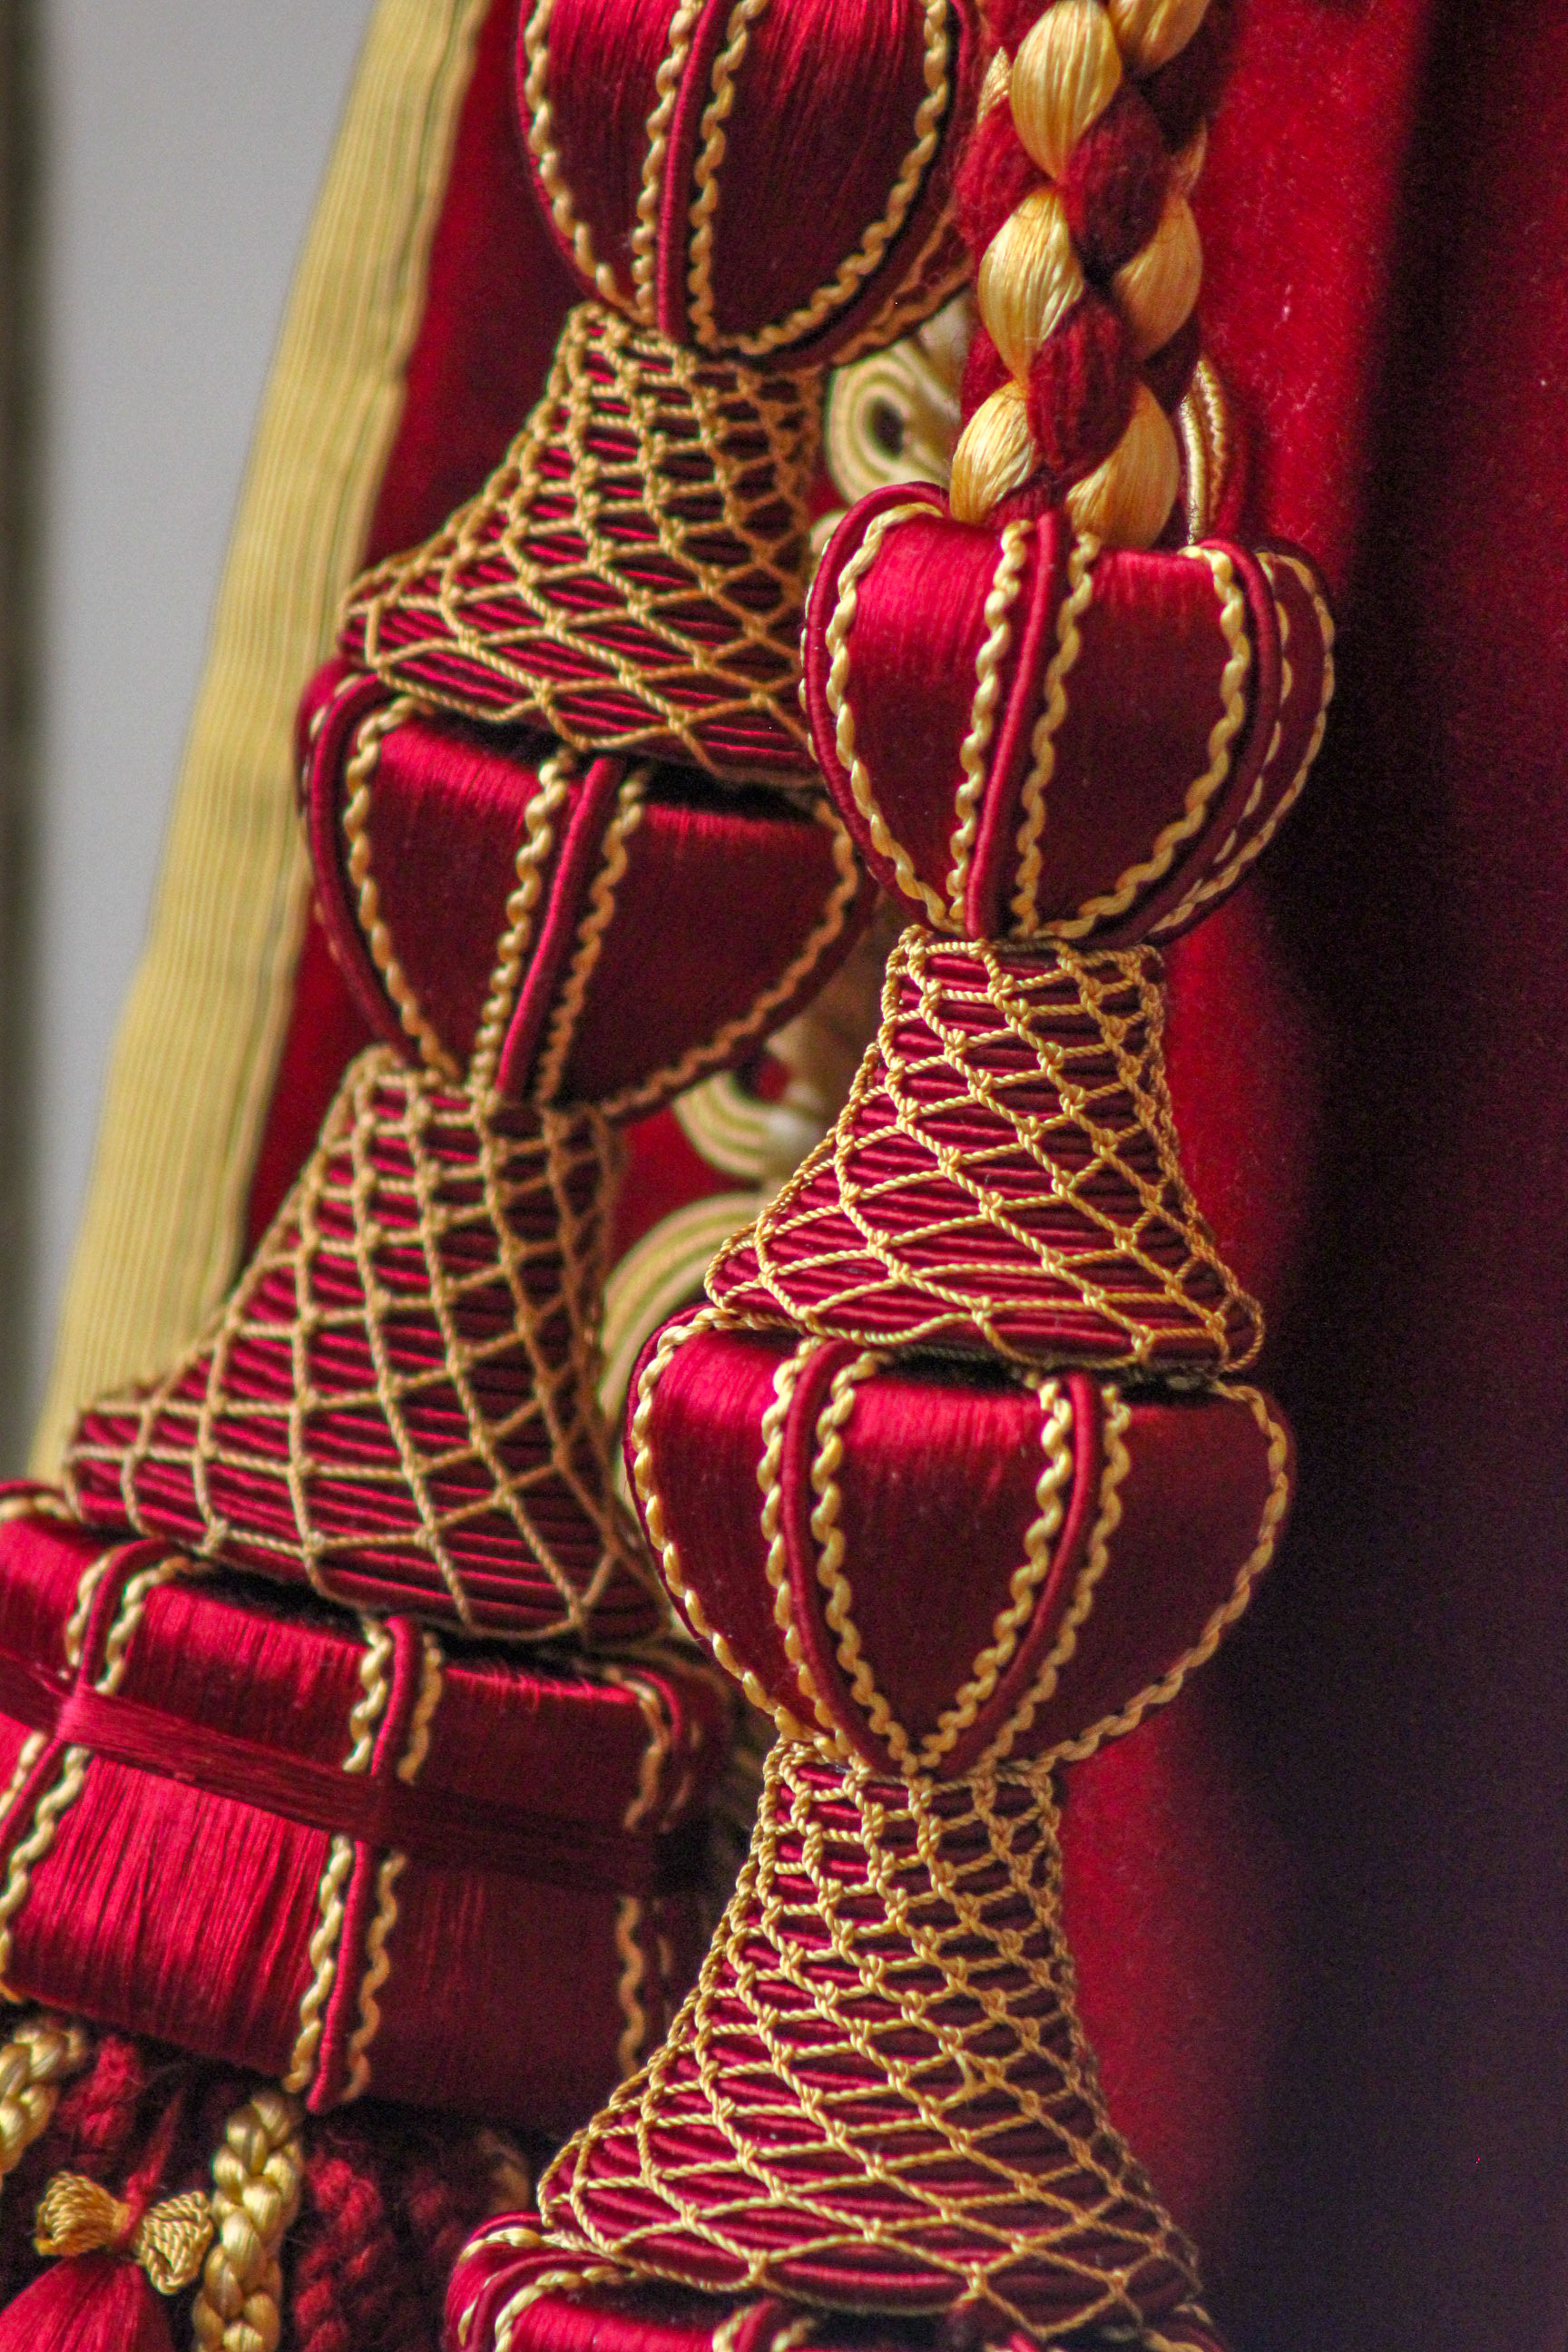 Detail from a Tassel